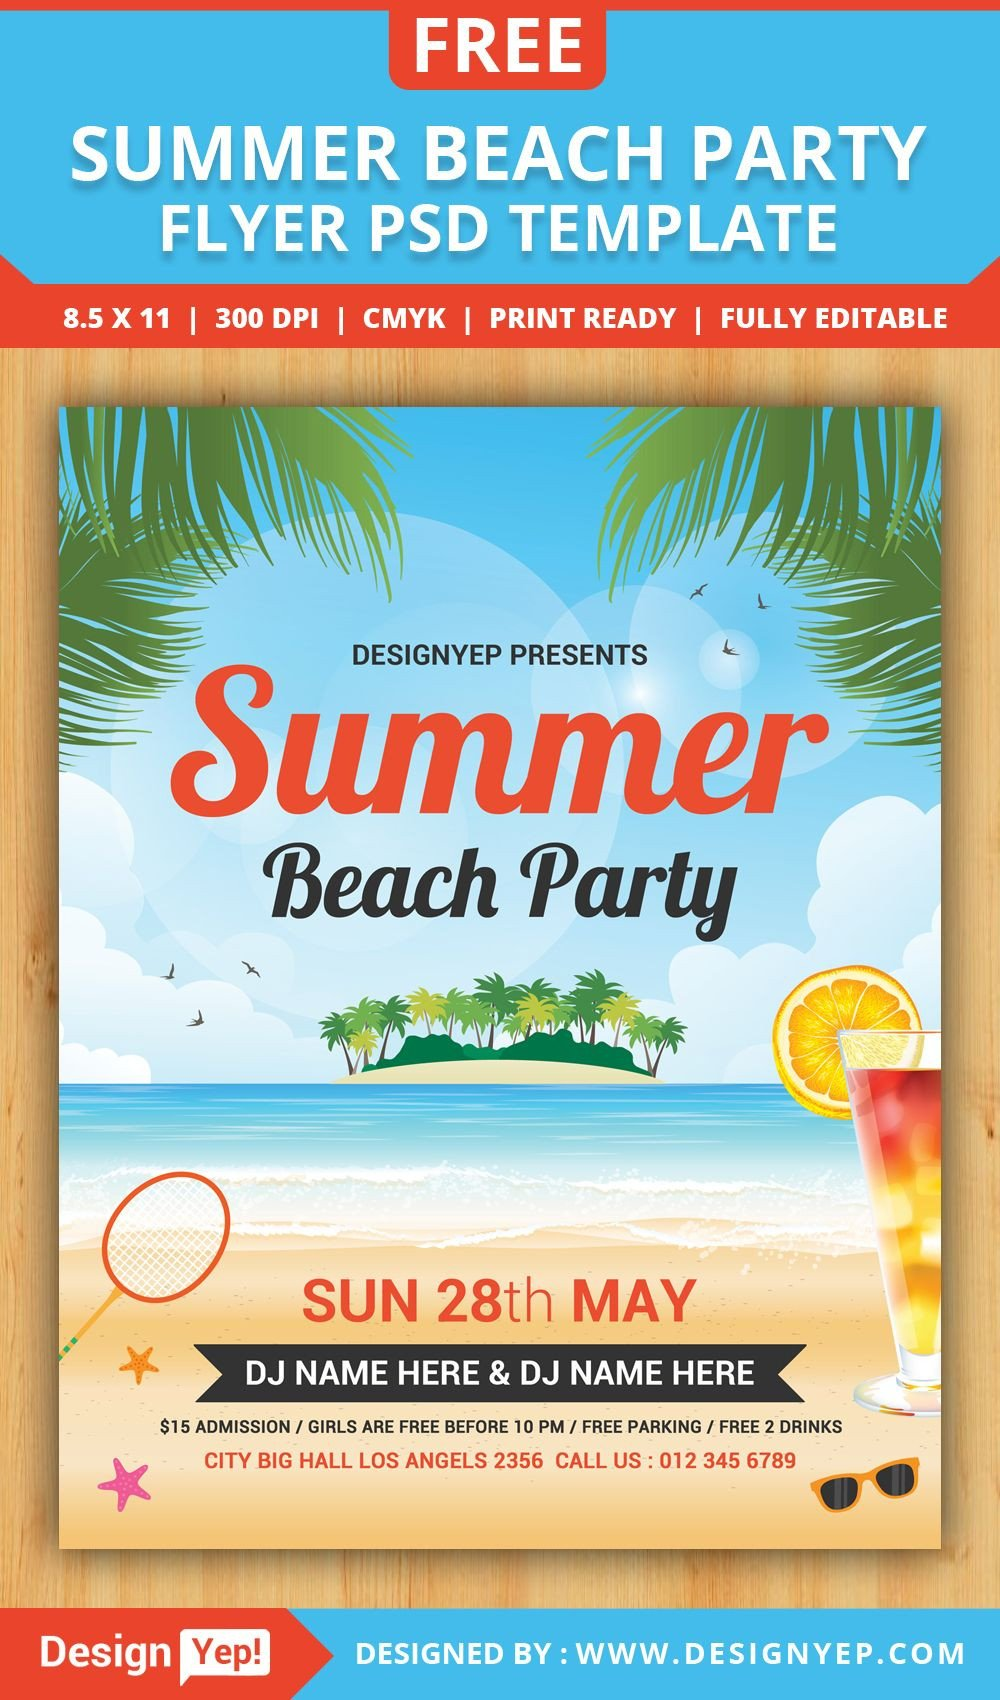 Templates for Flyers Free Free Summer Beach Party Flyer Psd Template Desingyep